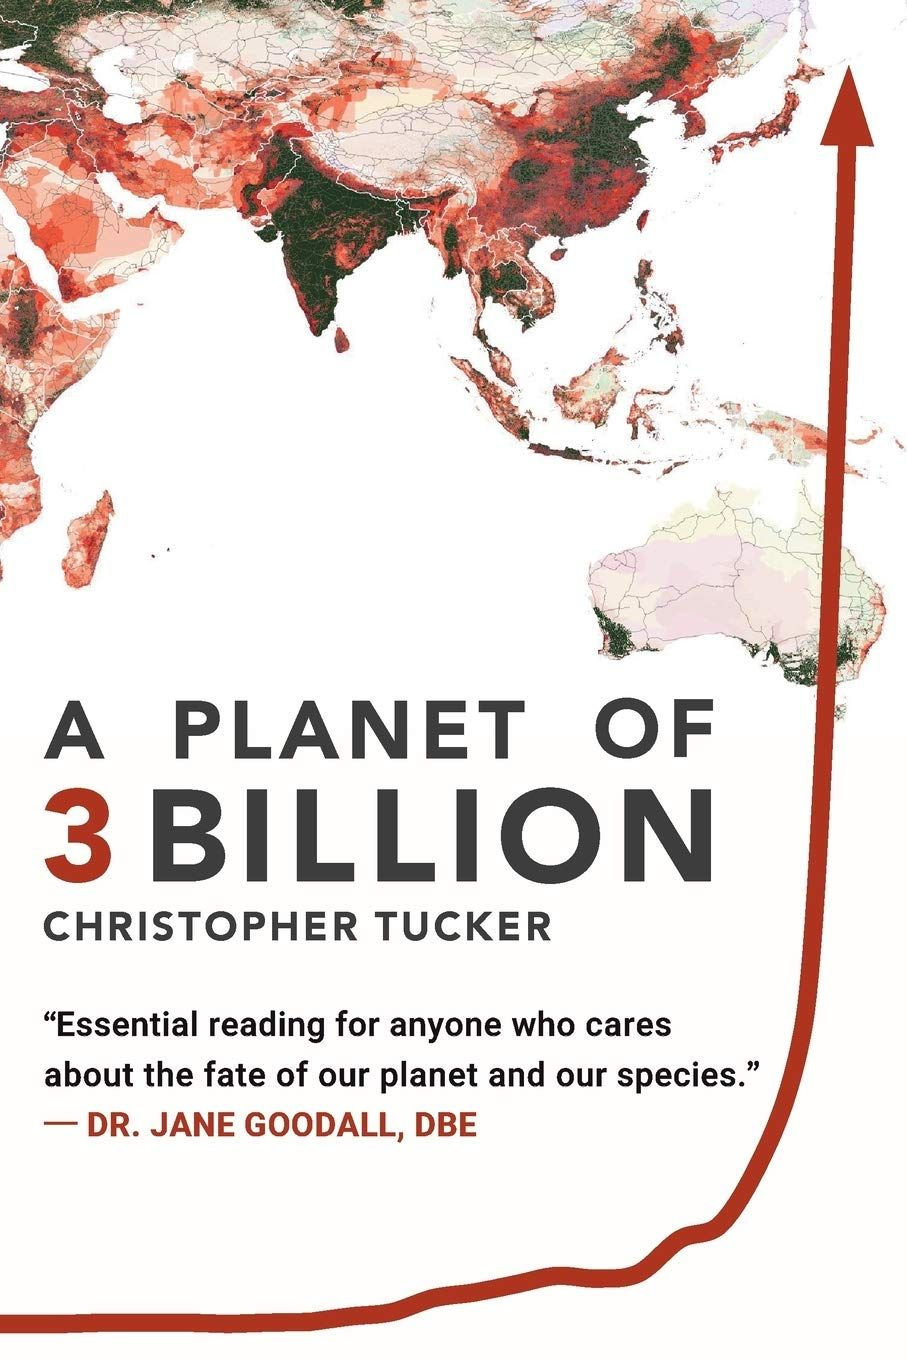 """""""A Planet of 3 Billion"""" - Is 3 the magic number?"""